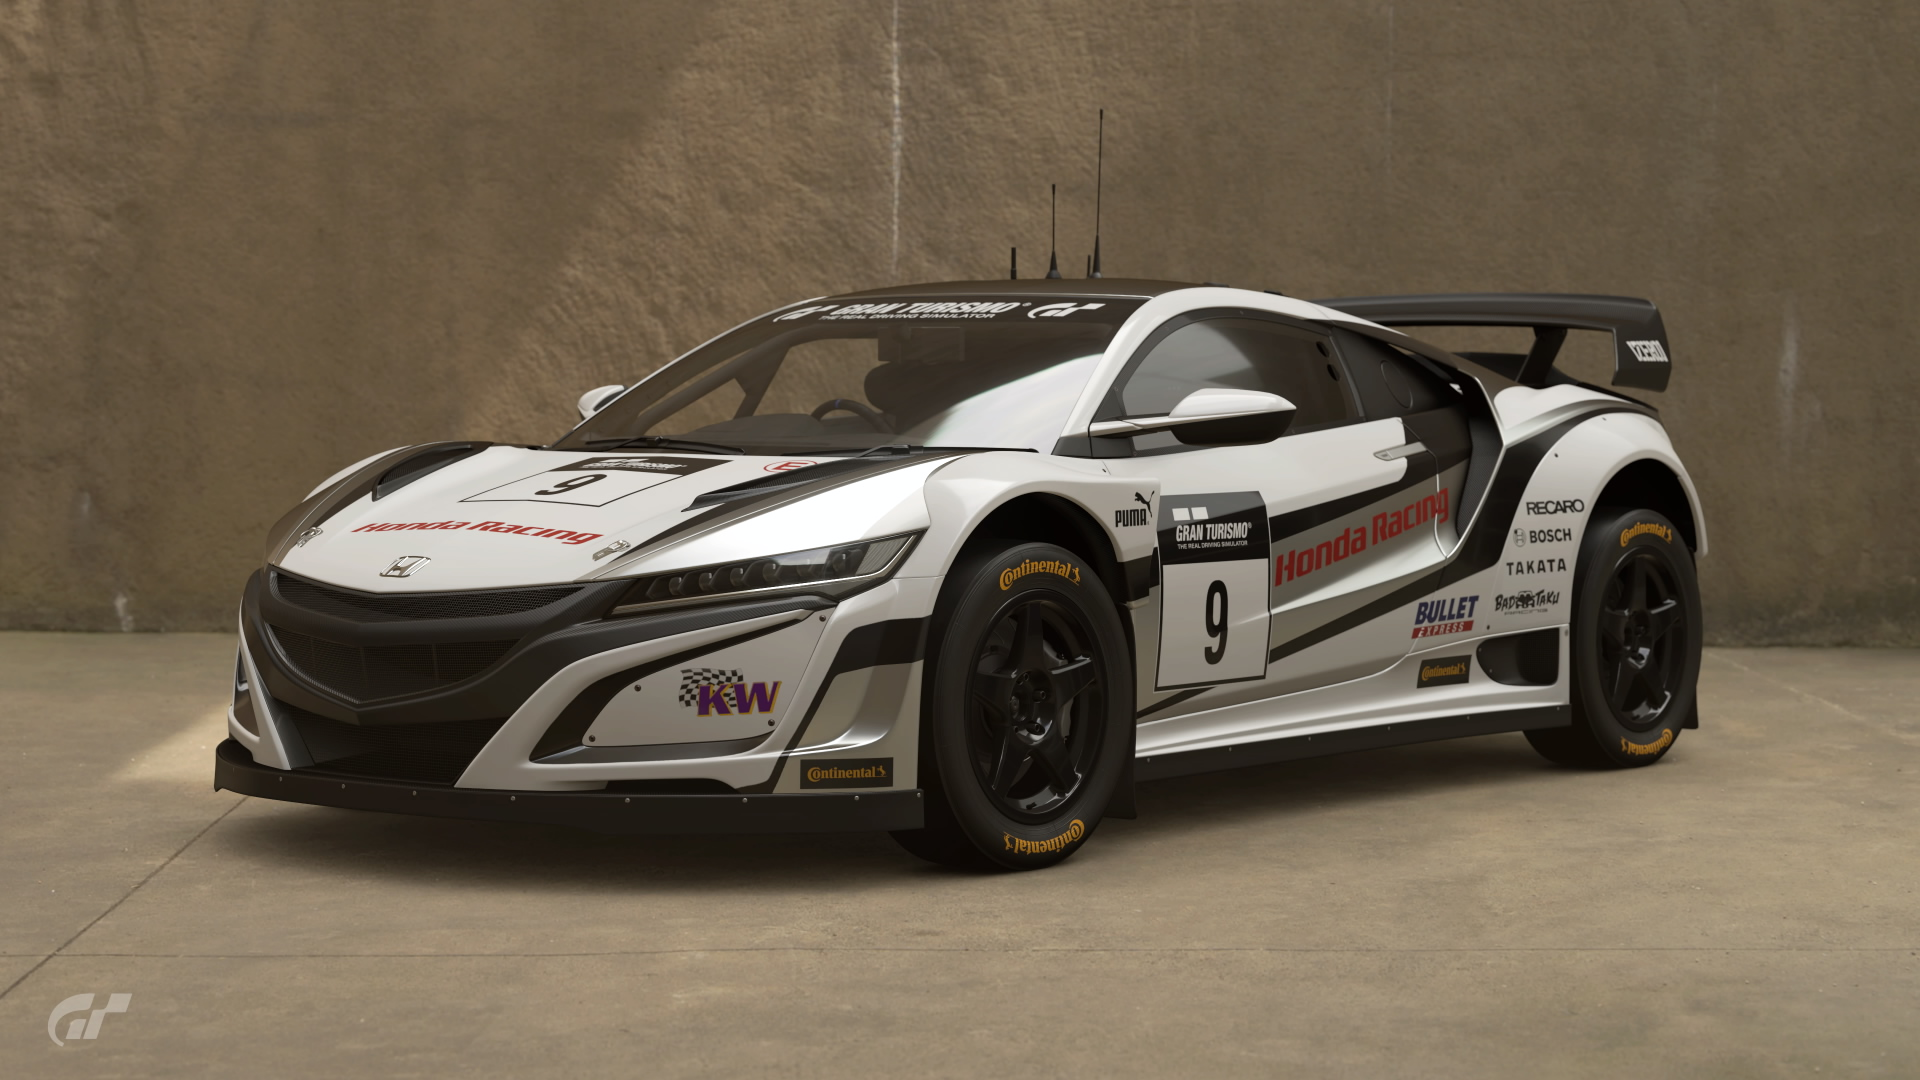 Honda NSX Gr.B Rally Car